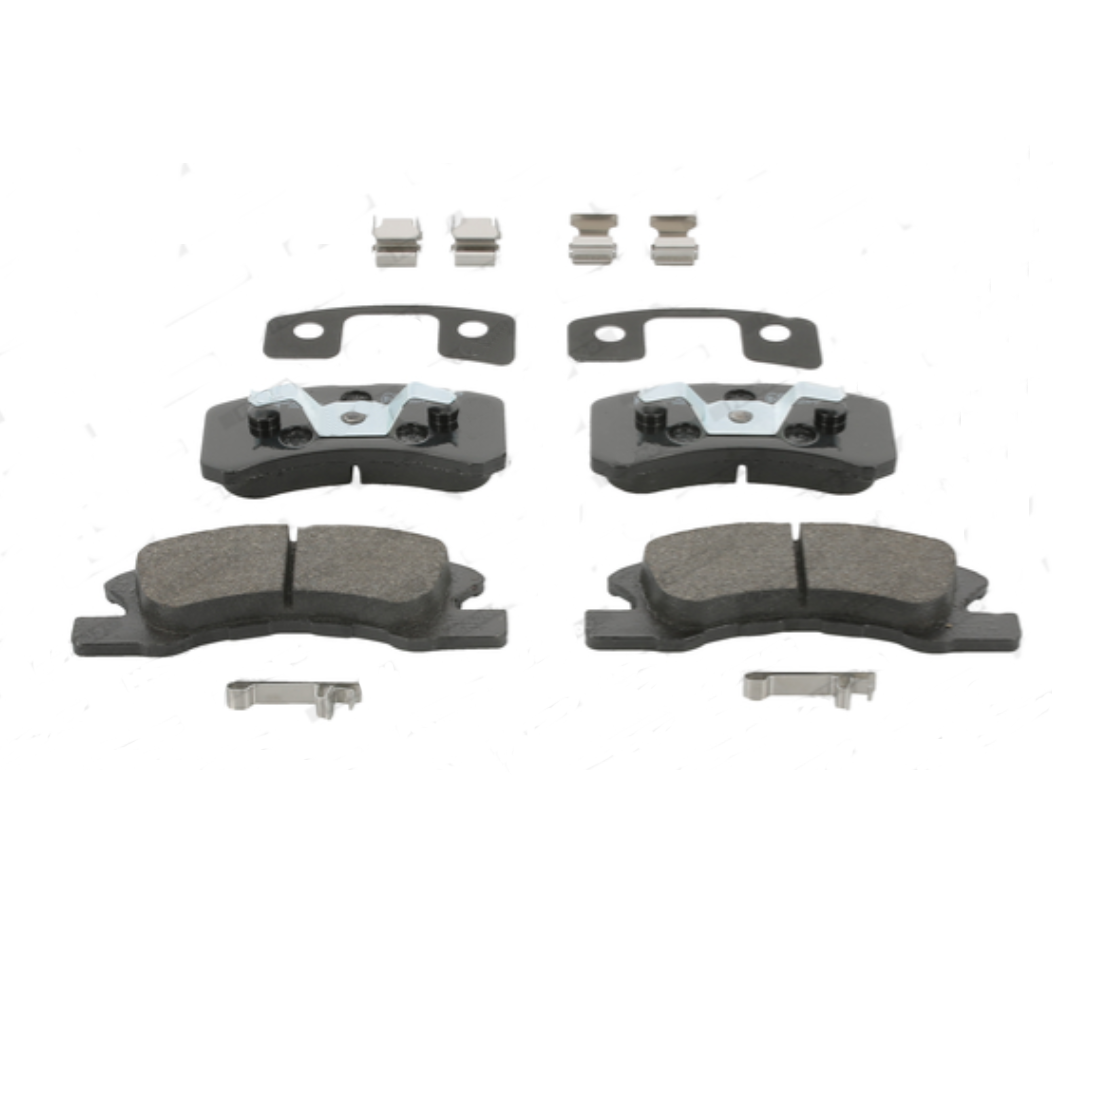 FRONT BRAKE PADS KIT DAIHATSU - MITUBISHI AUXILIA FOR 04465B2030